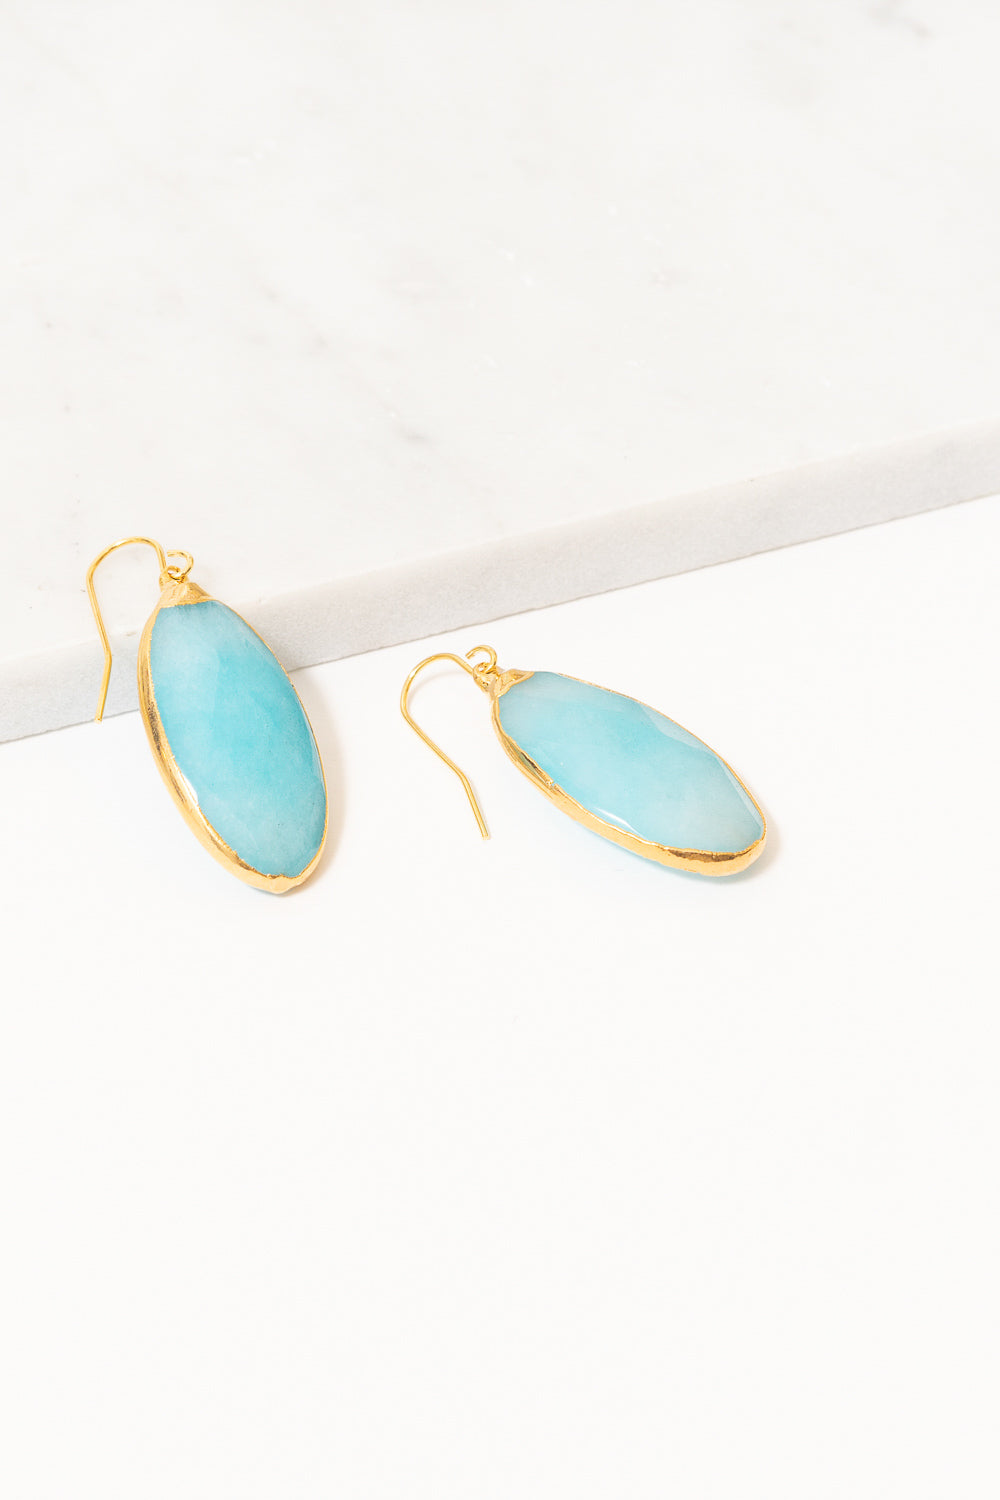 turquoise jade dangle earrings on marble